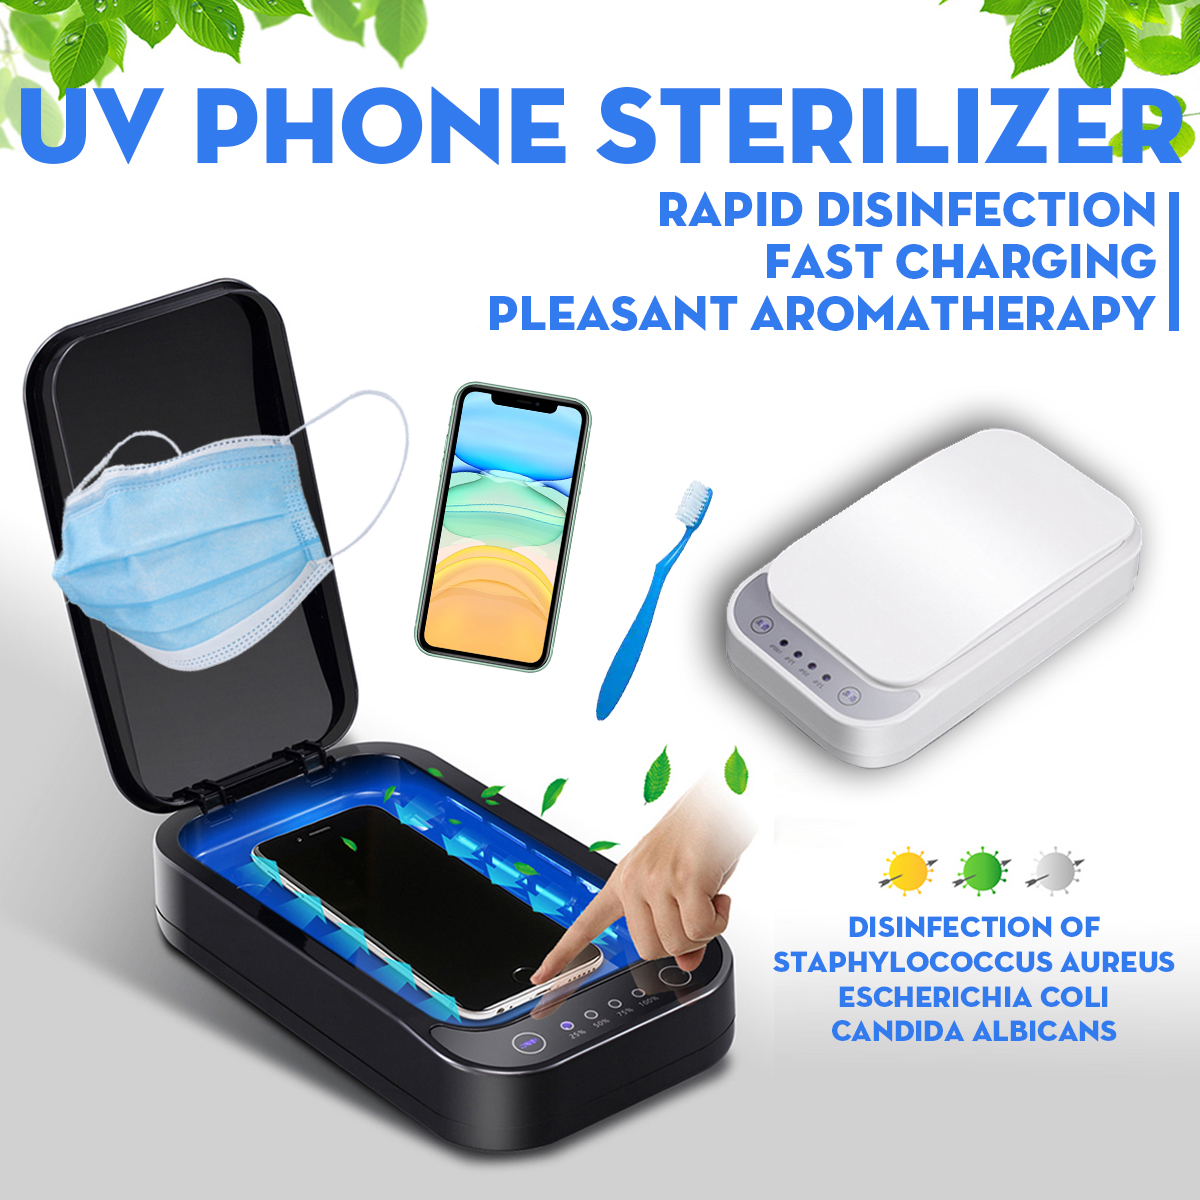 5V UV Phone Sterilizer Box Cleaner Personal Sanitizer Disinfection Cabinet With Aromatherapy Esterilizador+ Wireless Charging